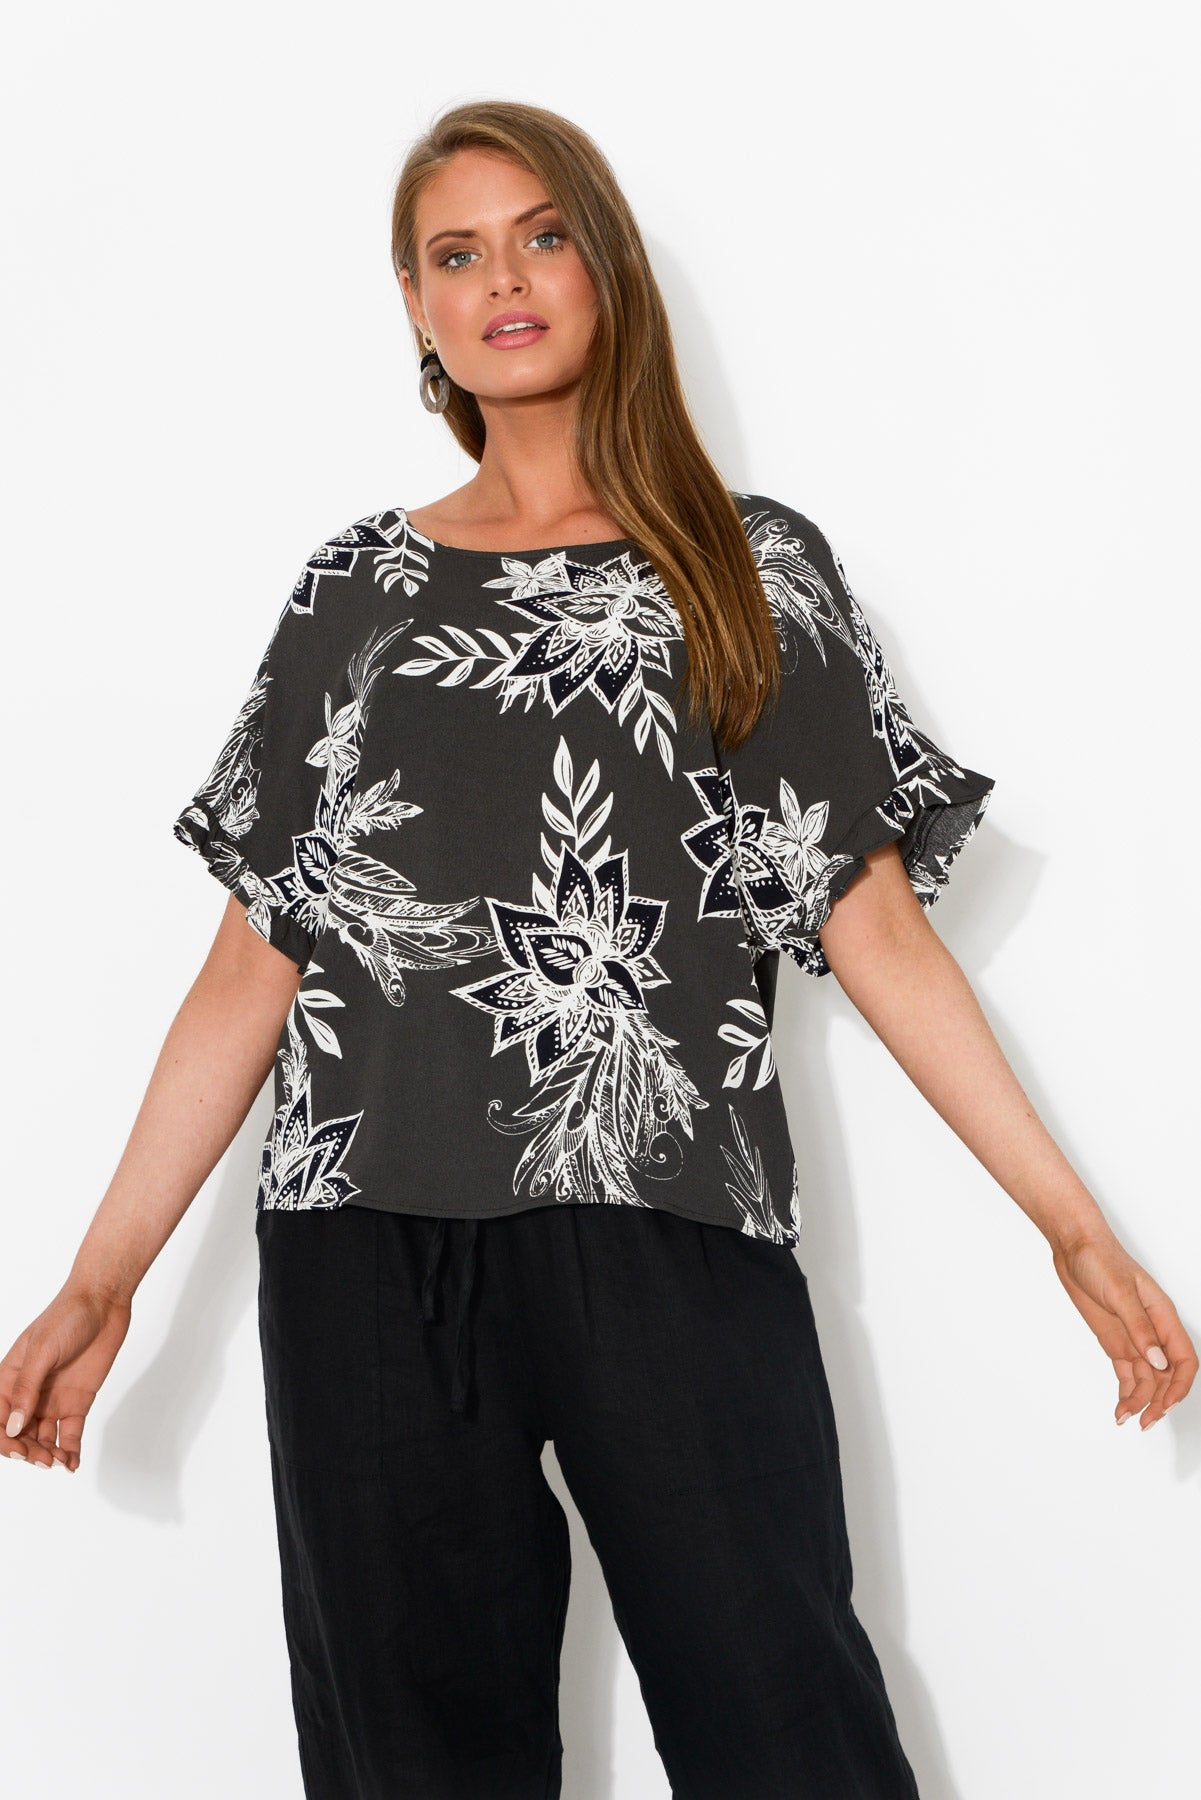 Kali Black Frill Top - Blue Bungalow